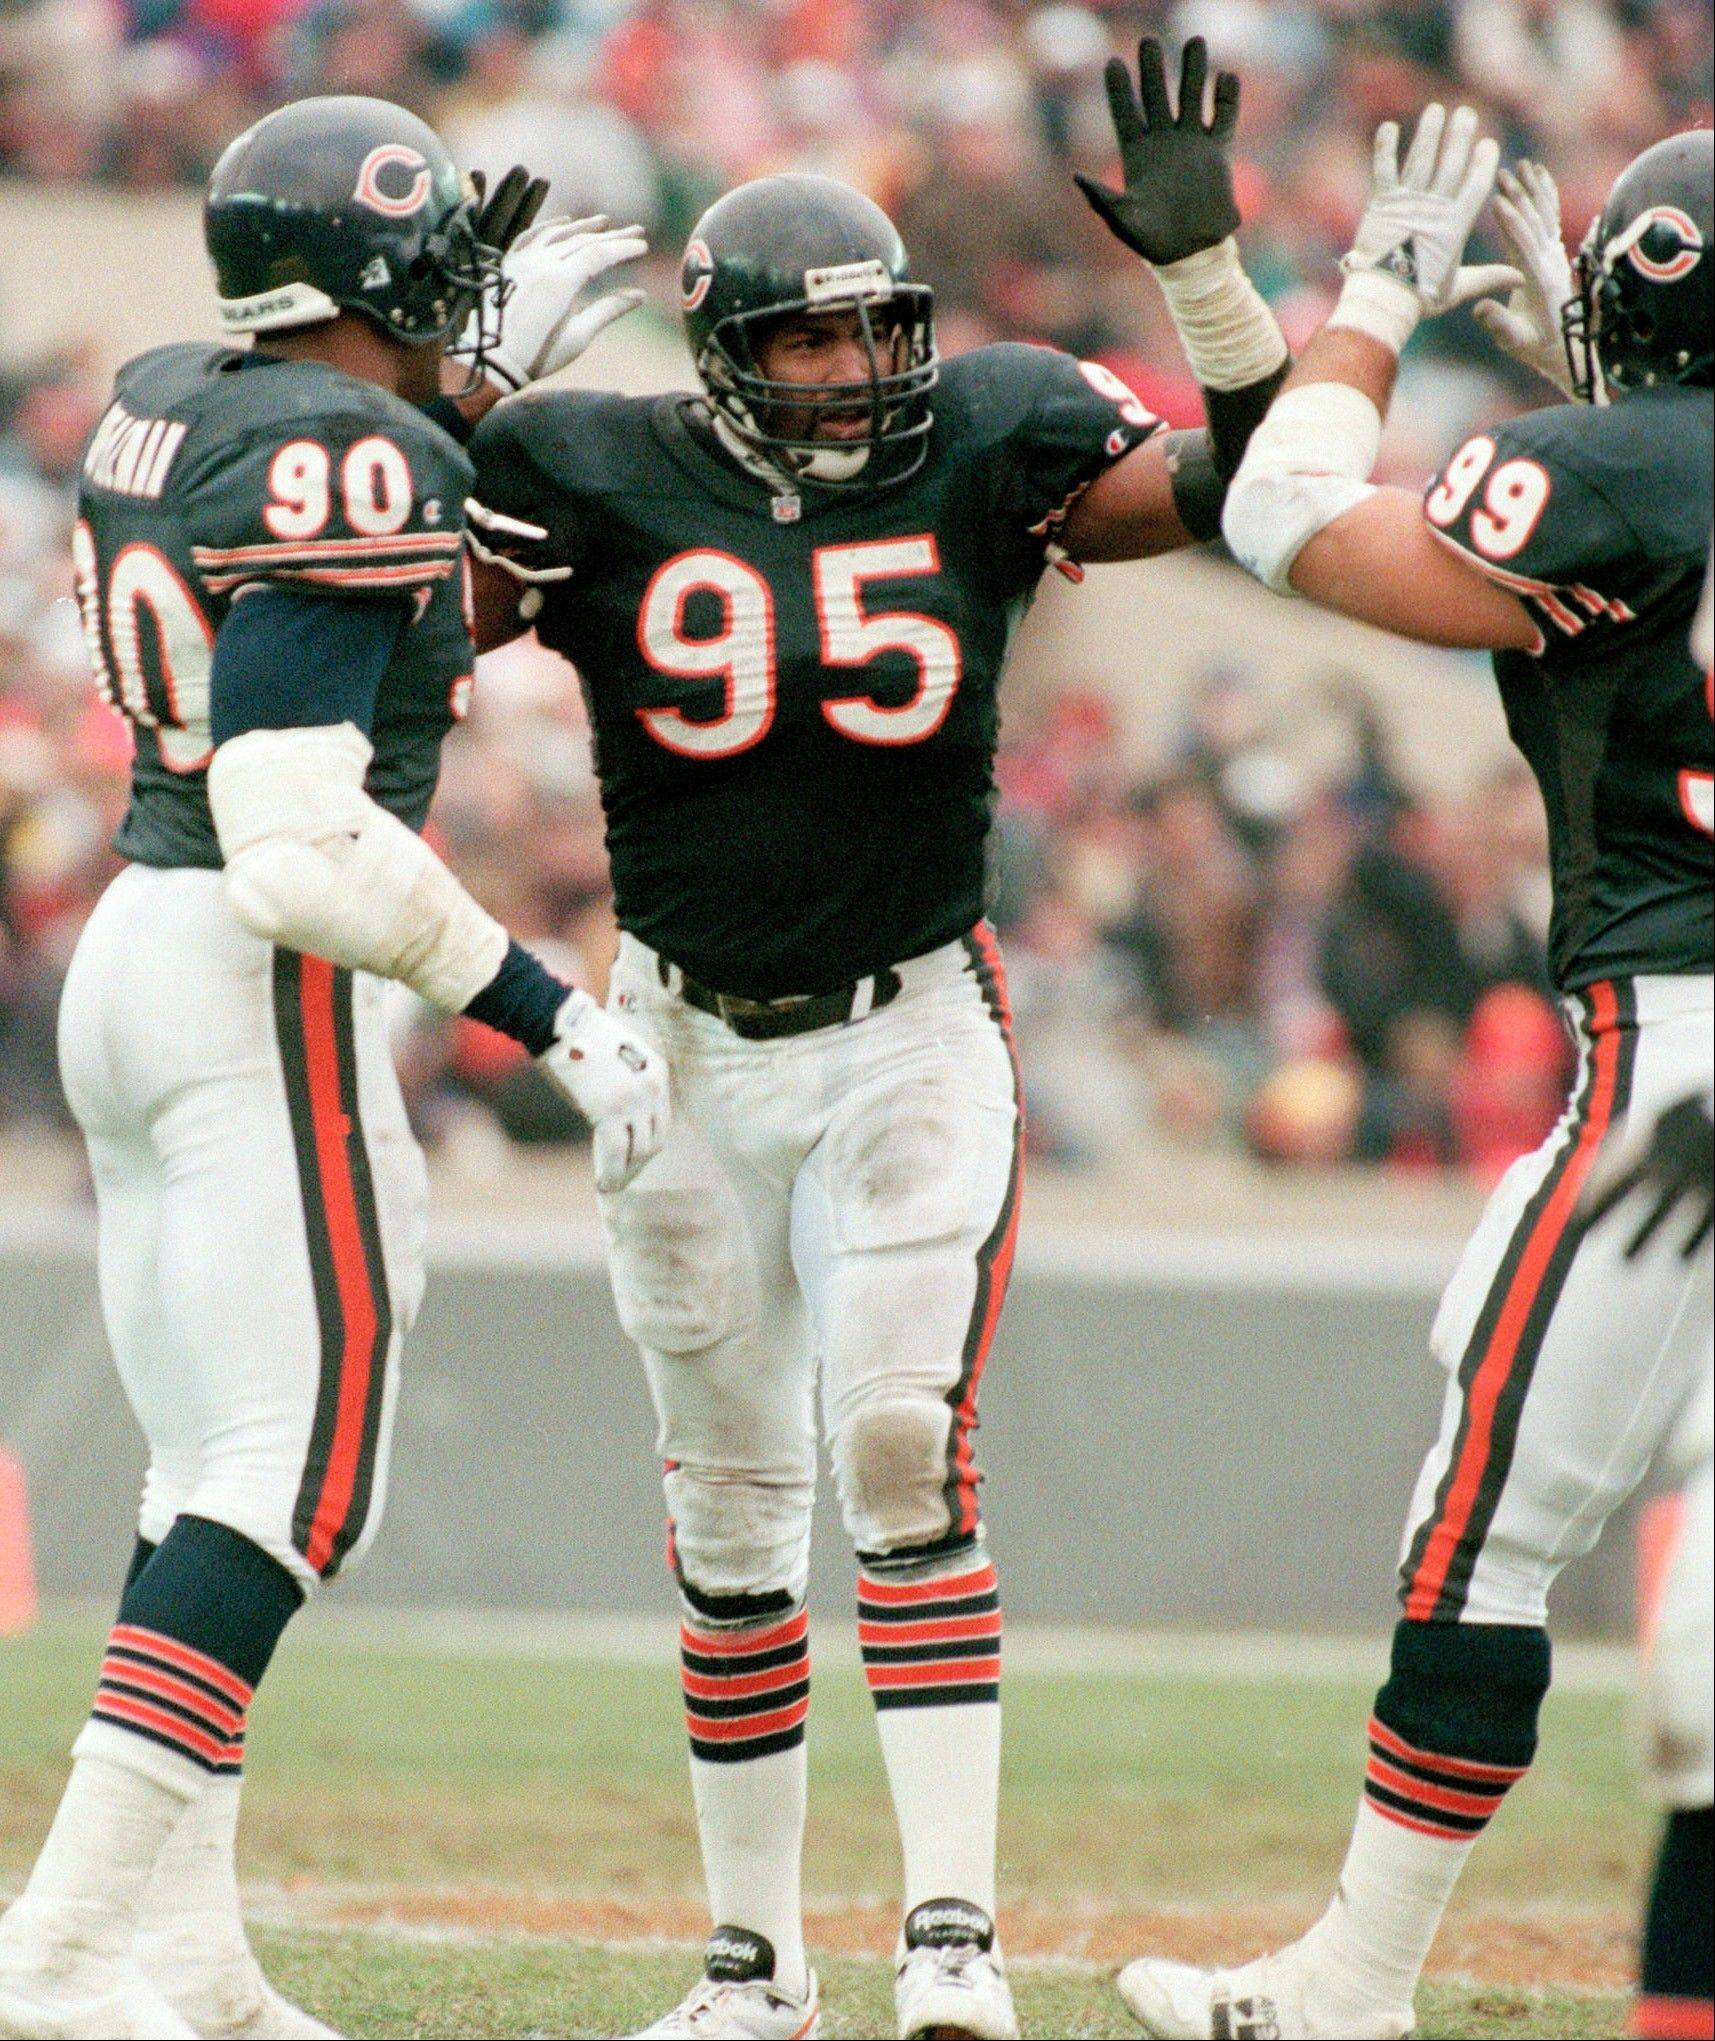 Richard Dent will finally become the third member of the legendary 1985 Chicago Bears defense to be inducted into the Hall of Fame on Saturday, Aug. 6, 2011, when he joins fellow �Monsters of the Midway� Dan Hampton and Mike Singletary, an honor that his teammates and coaches say is long overdue.